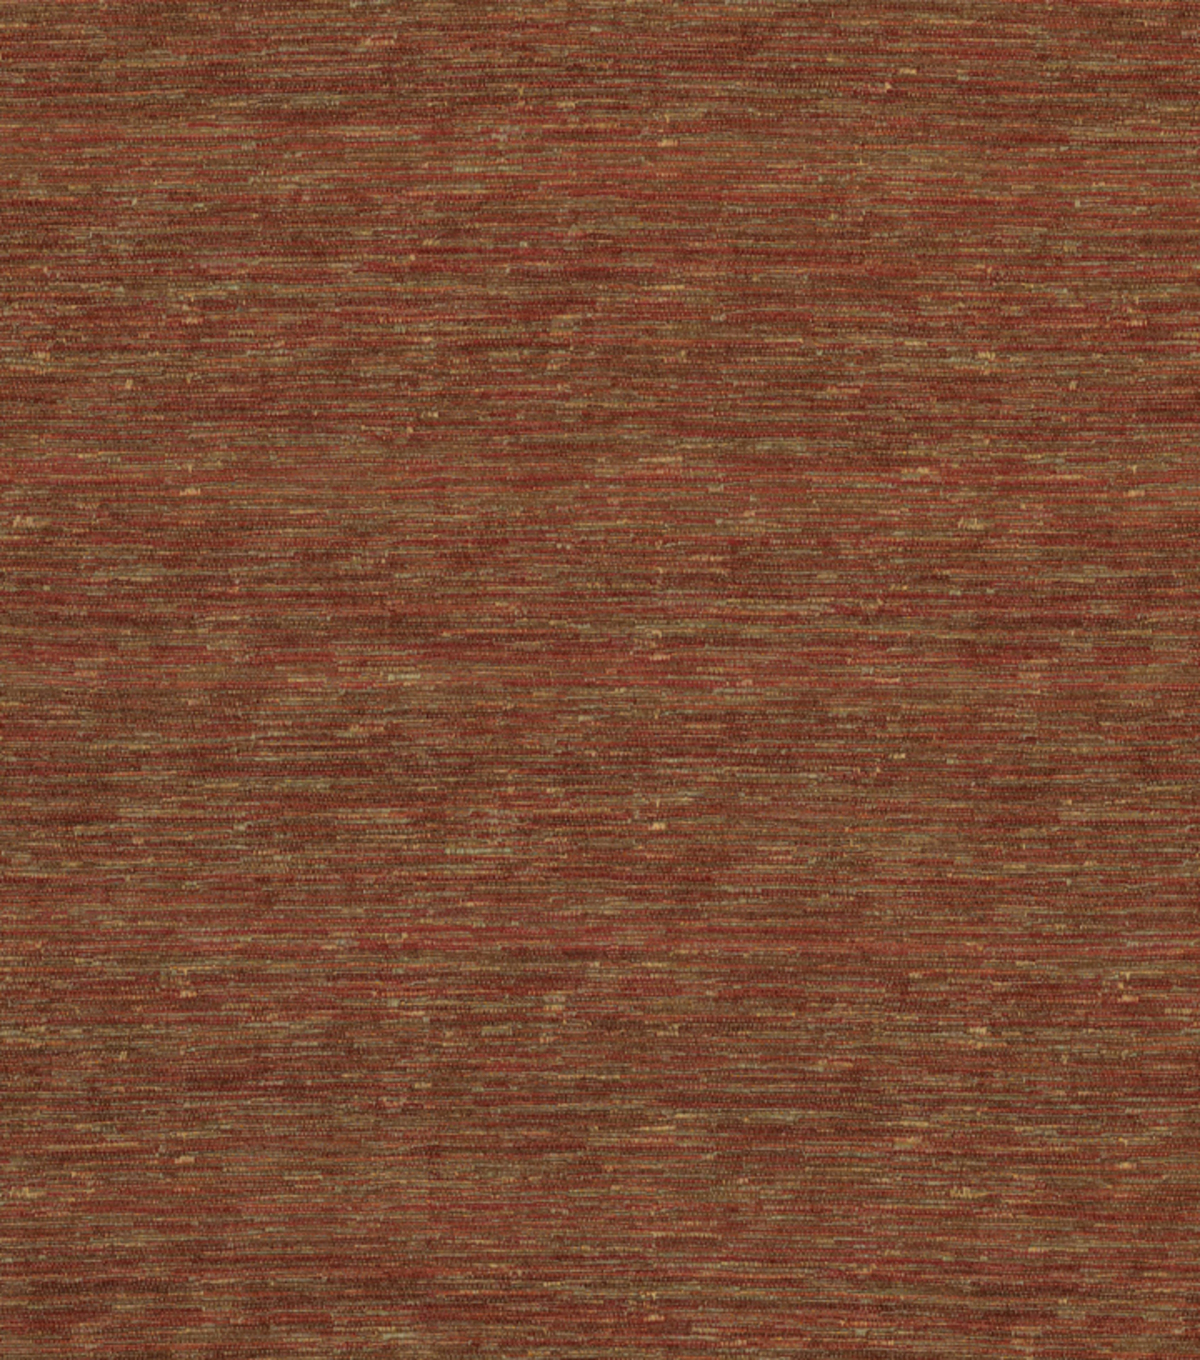 Home Decor 8\u0022x8\u0022 Fabric Swatch-Caledonia Salsa